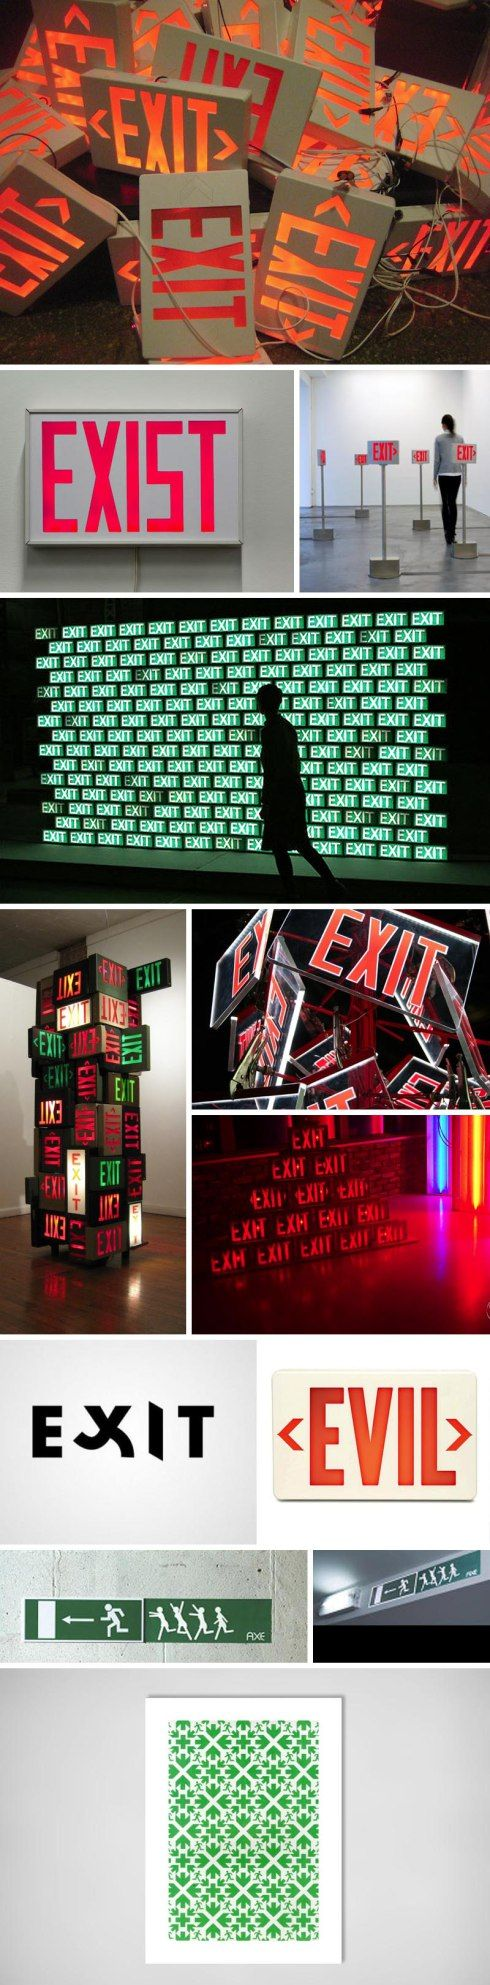 Sculpture and installations that use Exit signs, Exit Signs as Art